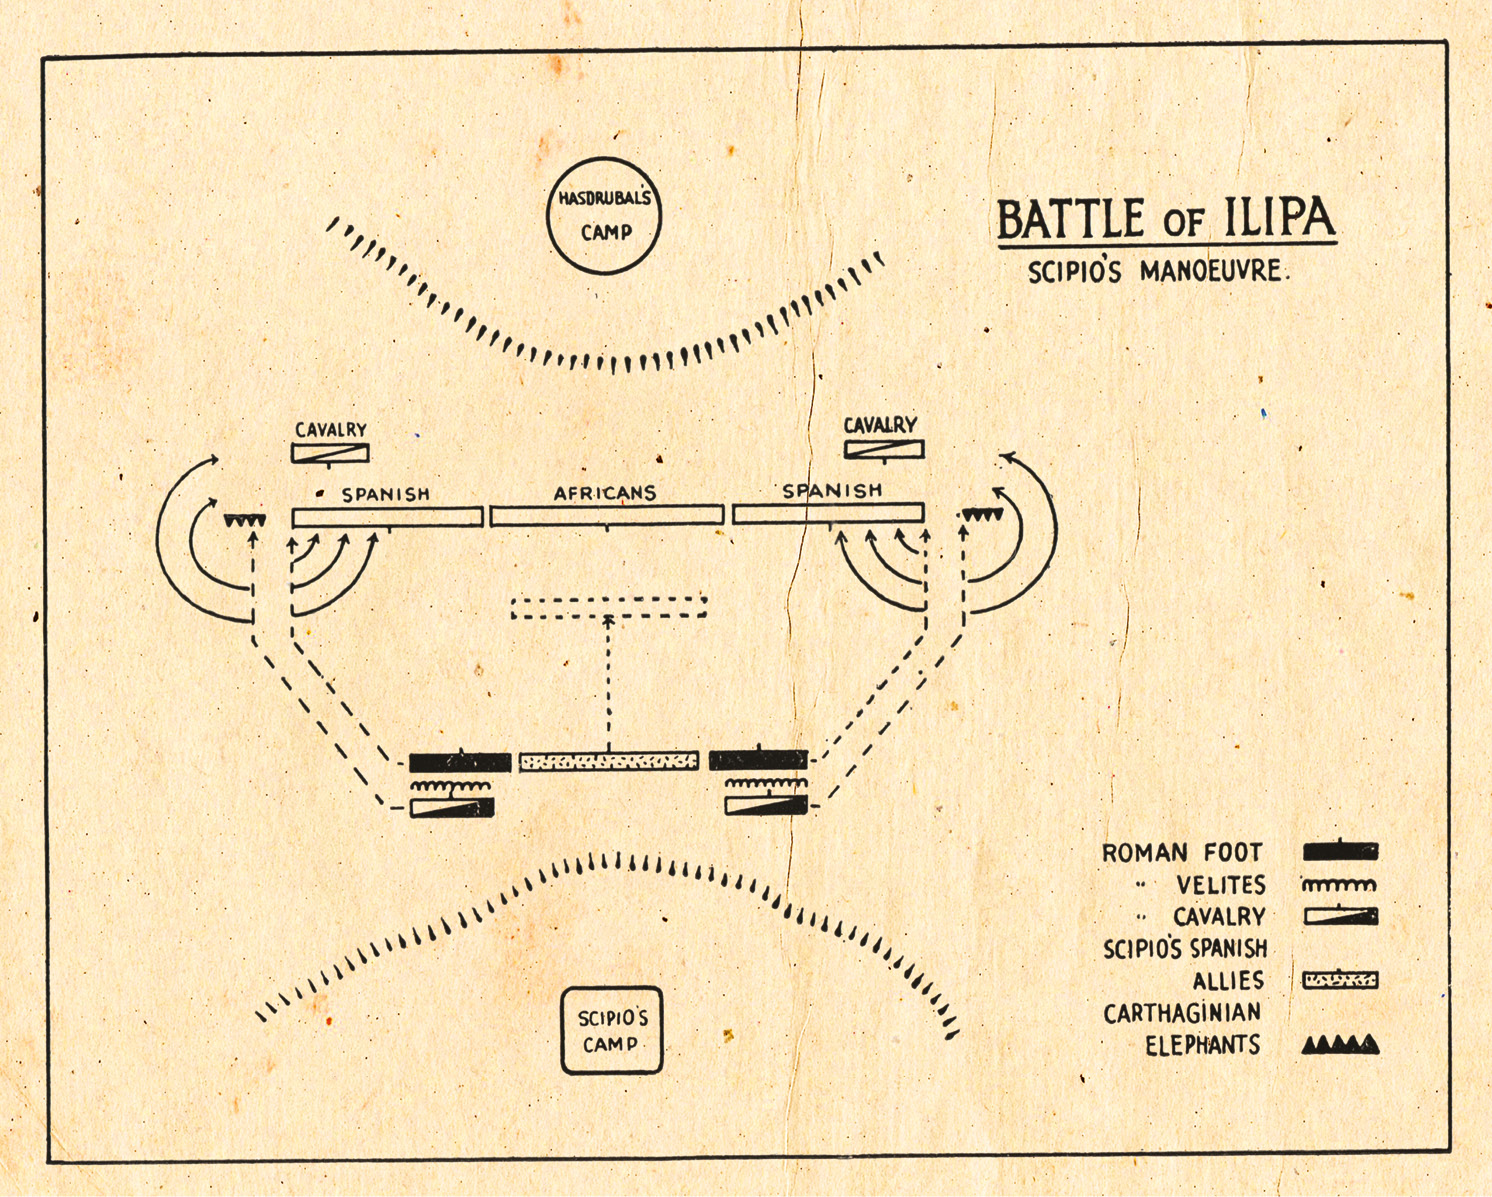 Above Plan of the Battle of Ilipa, 206 BC. BELOW Plan of Utica area showing the ambush of Hanno and the attack on the camps of Hasdrubal and Syphax, 203 BC.